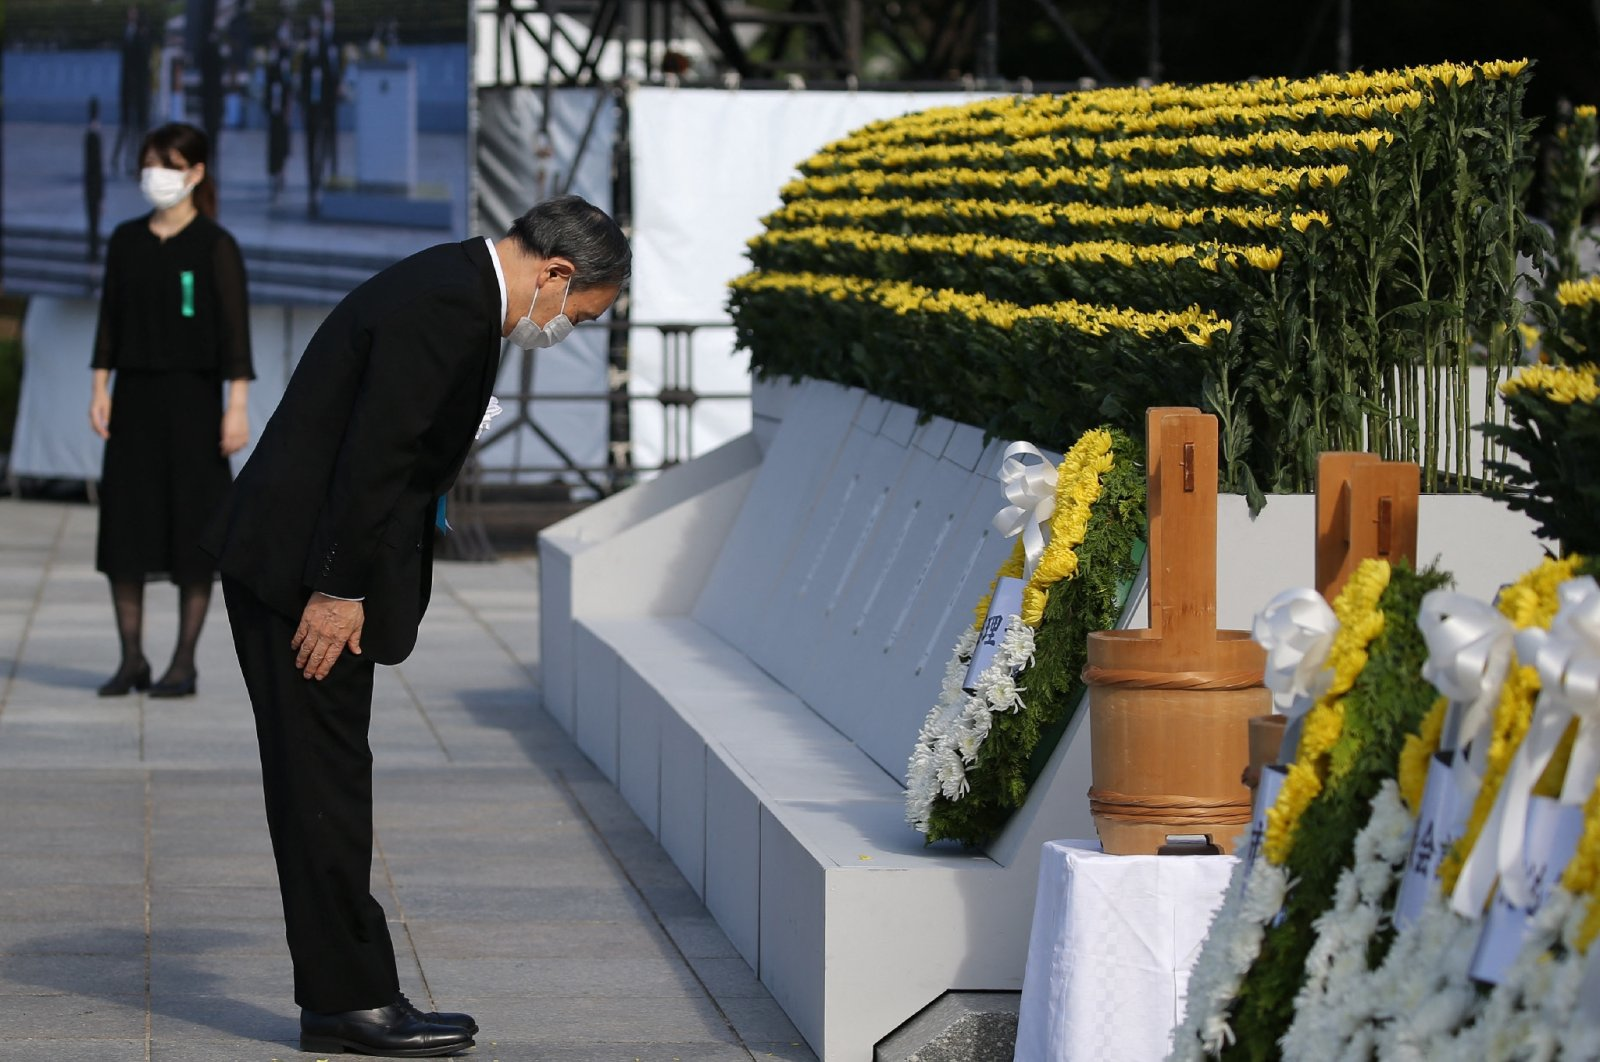 Japan's Prime Minister Yoshihide Suga (L) pays his respects during a ceremony to mark the 76th anniversary of the world's first atomic bomb attack at the Peace Memorial Park in Hiroshima on Aug. 6, 2021. (AFP Photo)